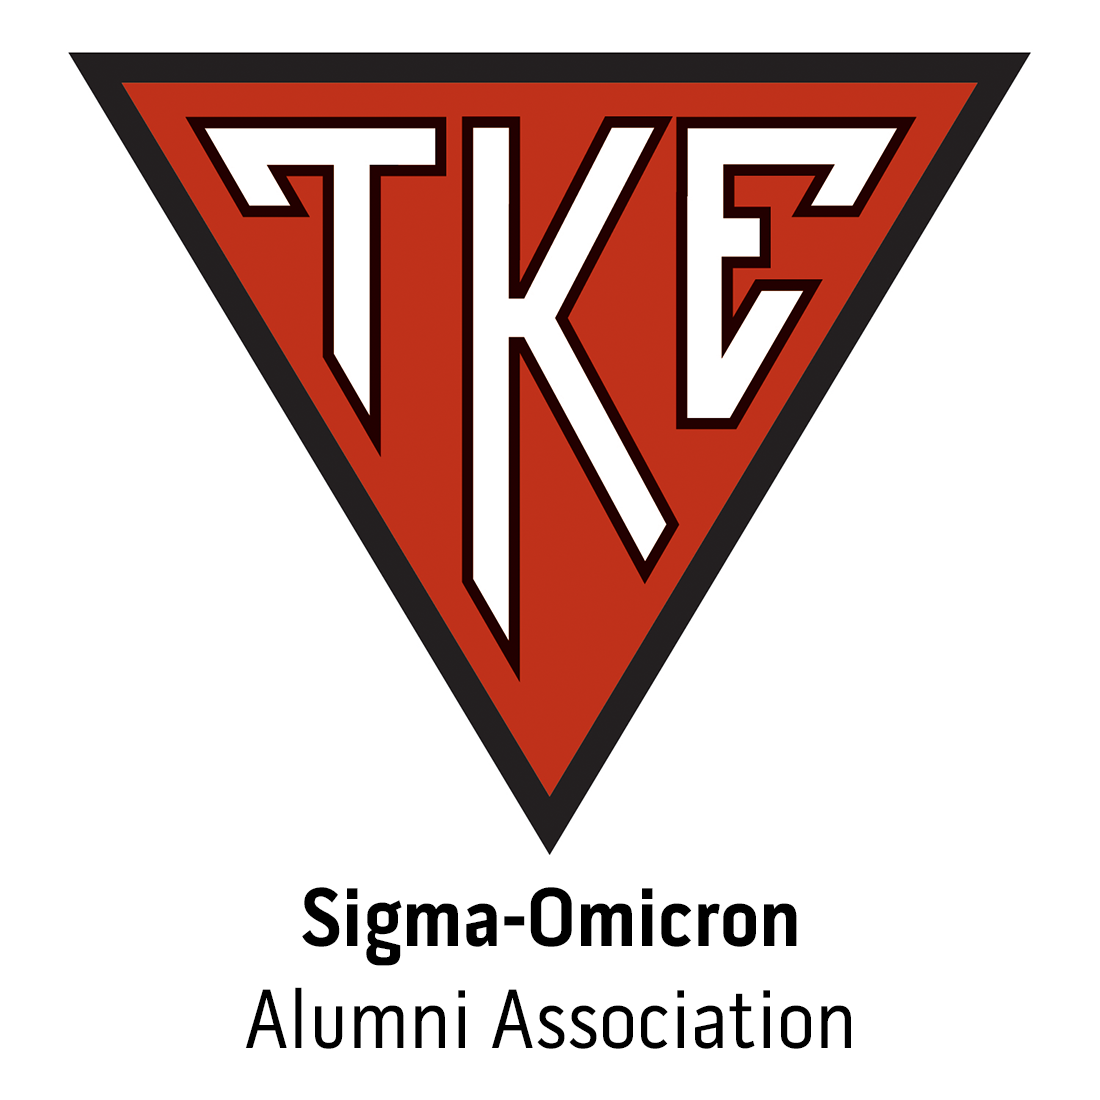 Sigma-Omicron Alumni Association at Middle Tennessee State University